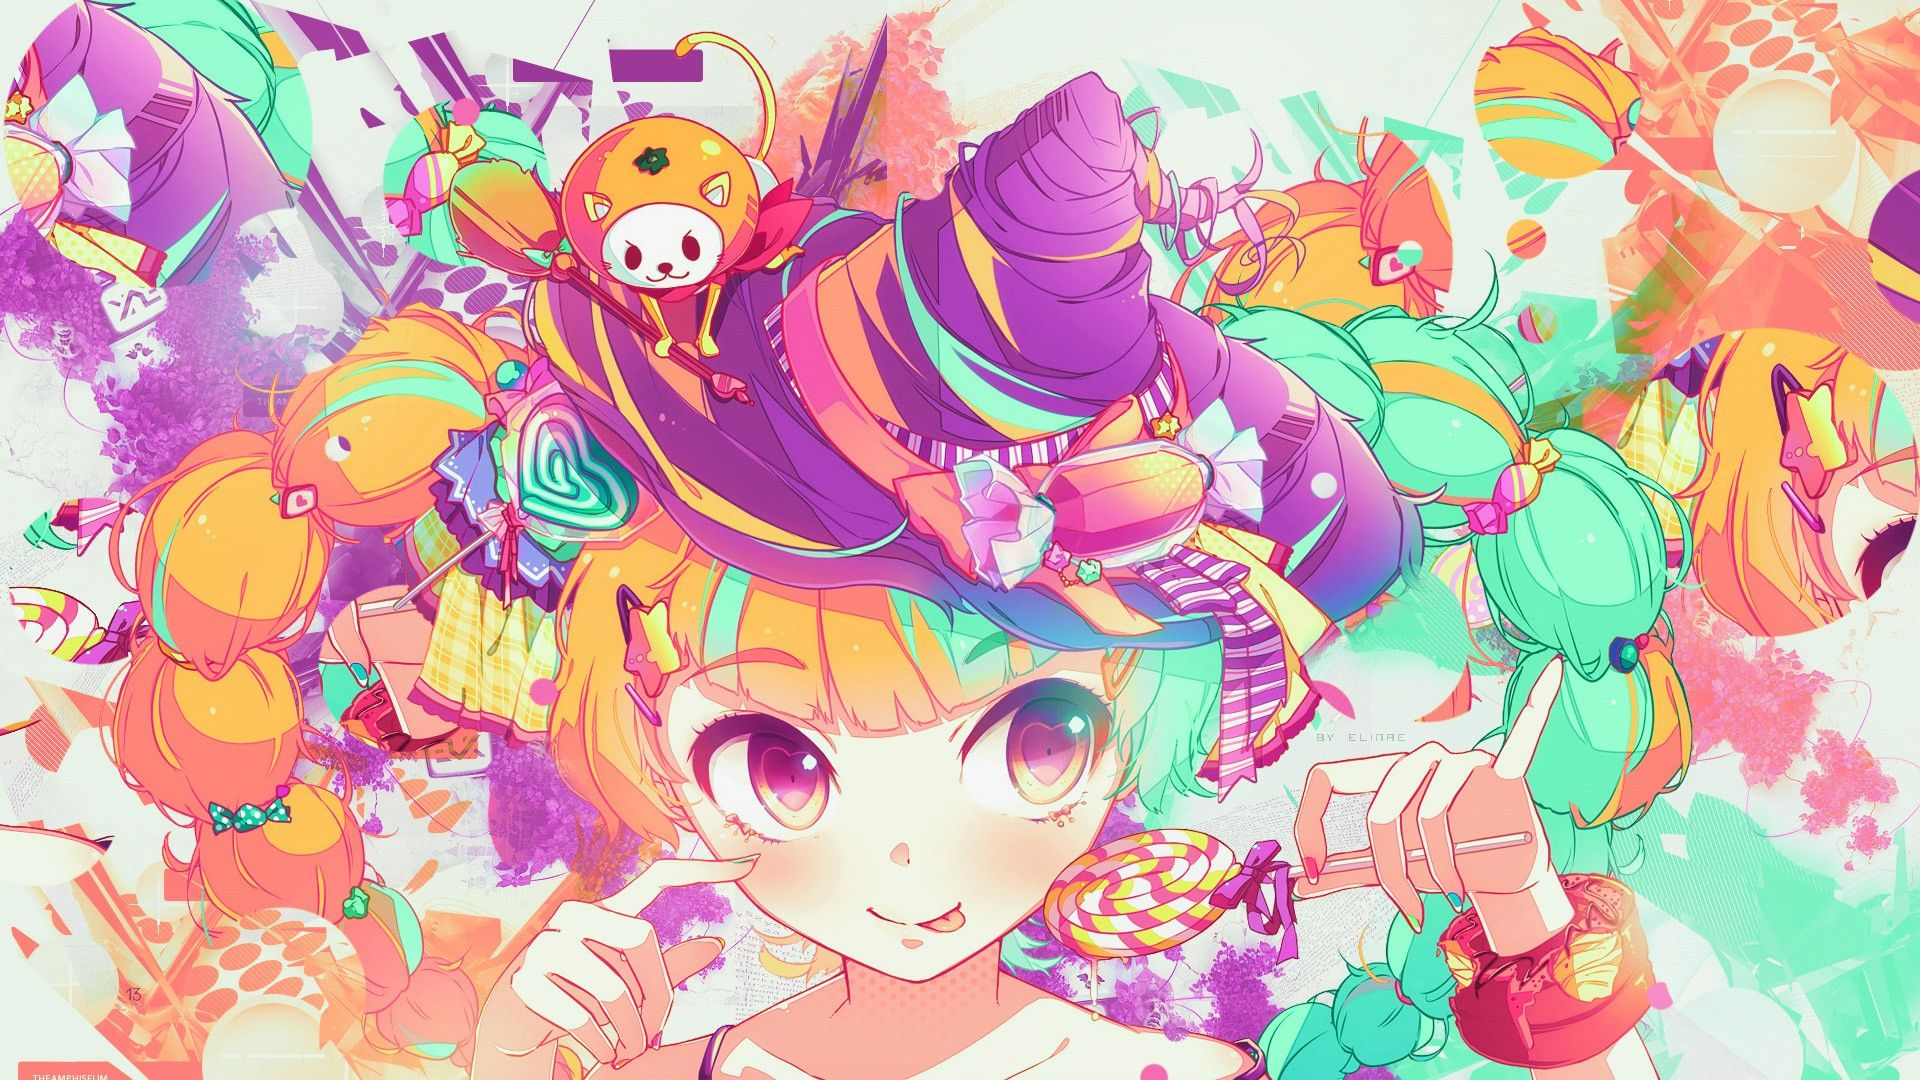 Colorful Anime Wallpapers - Wallpaper Cave